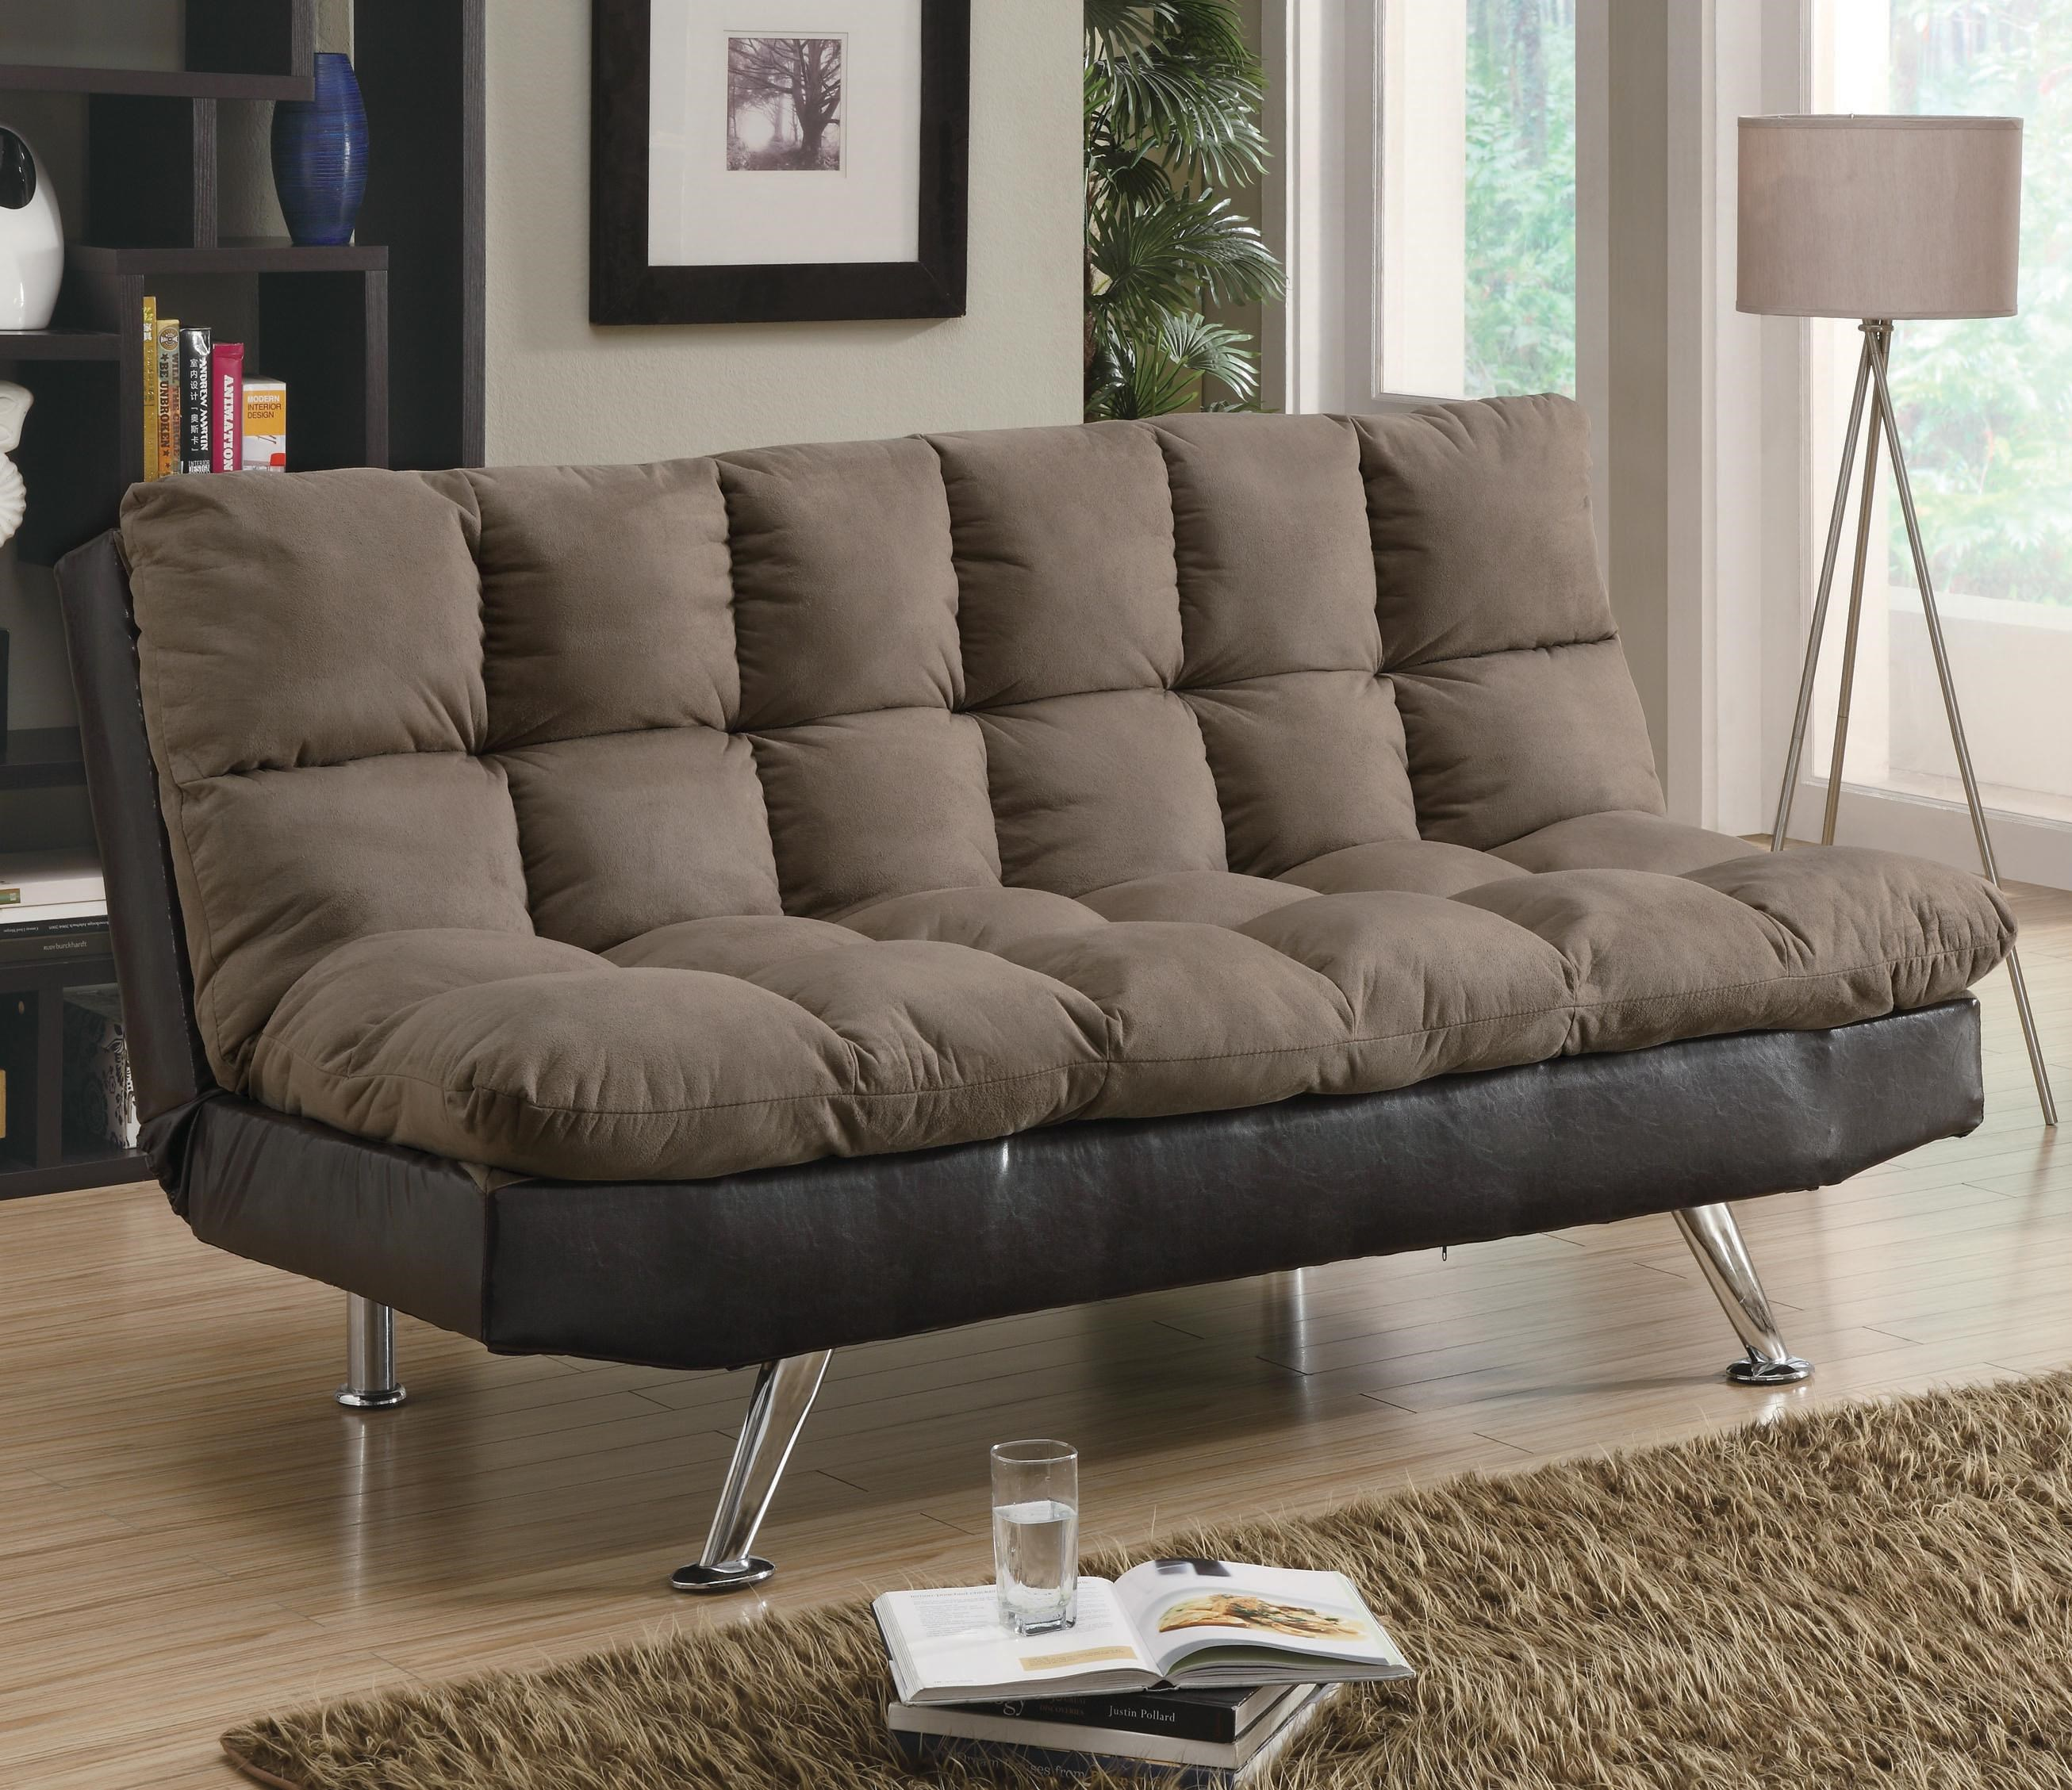 Product Review Michael Alan Furniture Design Lake Havasu City Bullhead Kingman Arizona